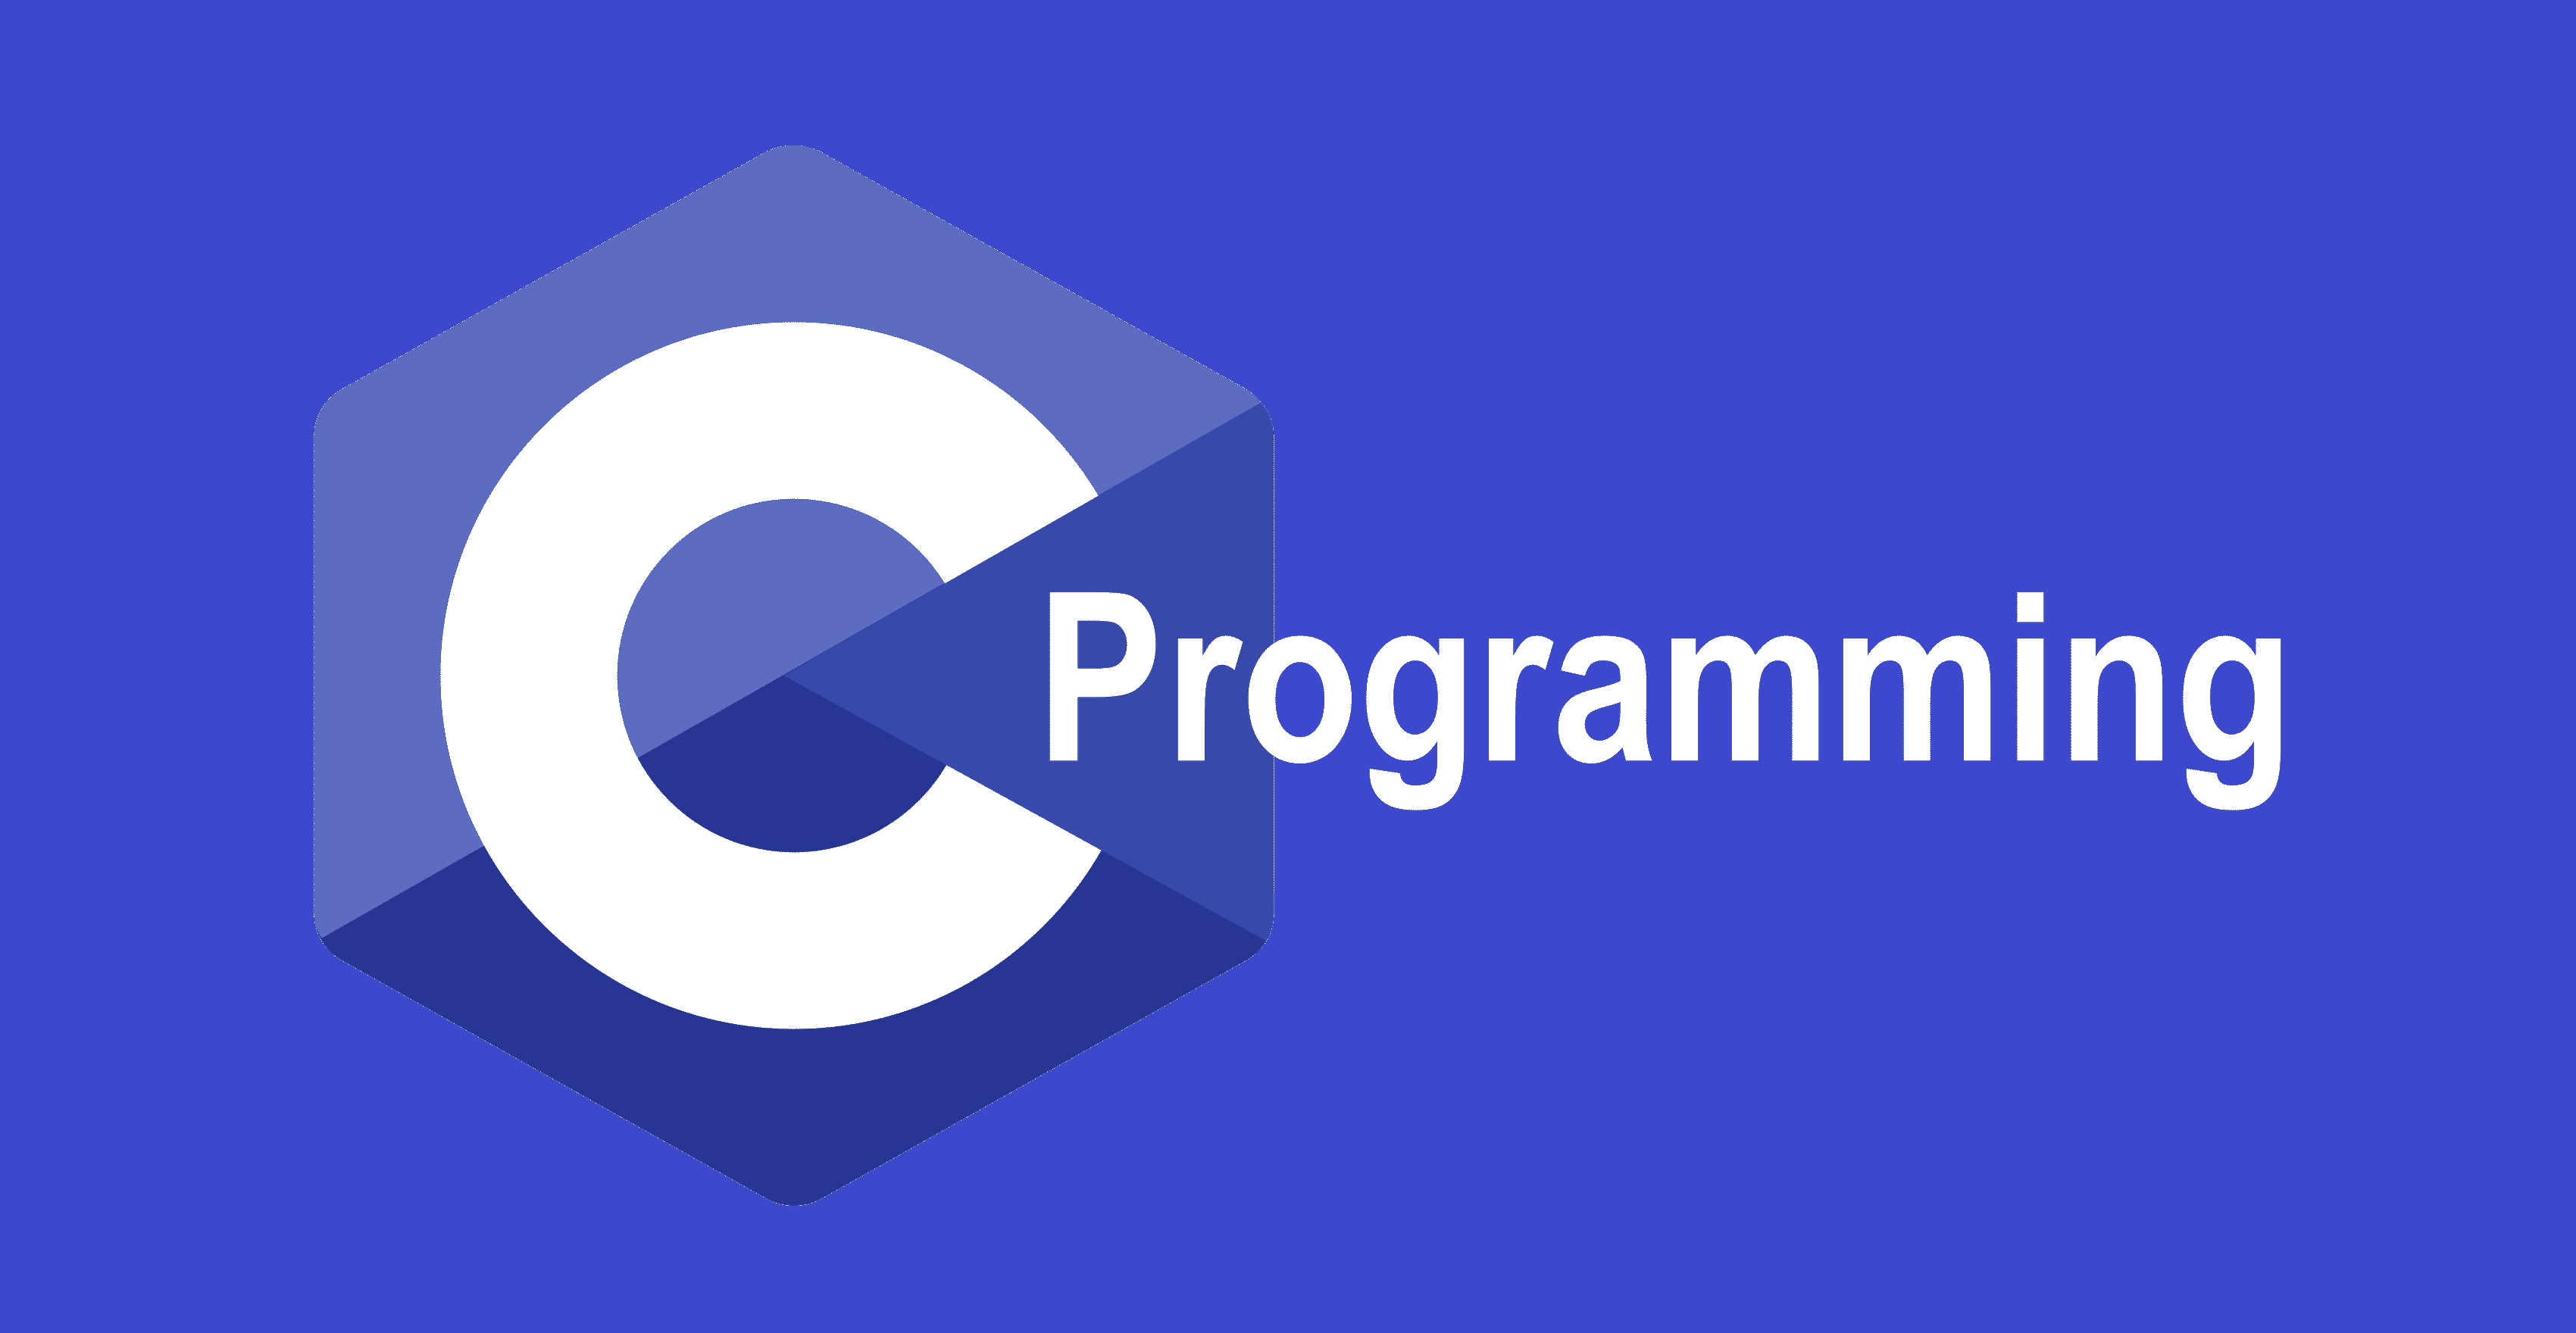 C Programming | Introduction | Features - For Beginners